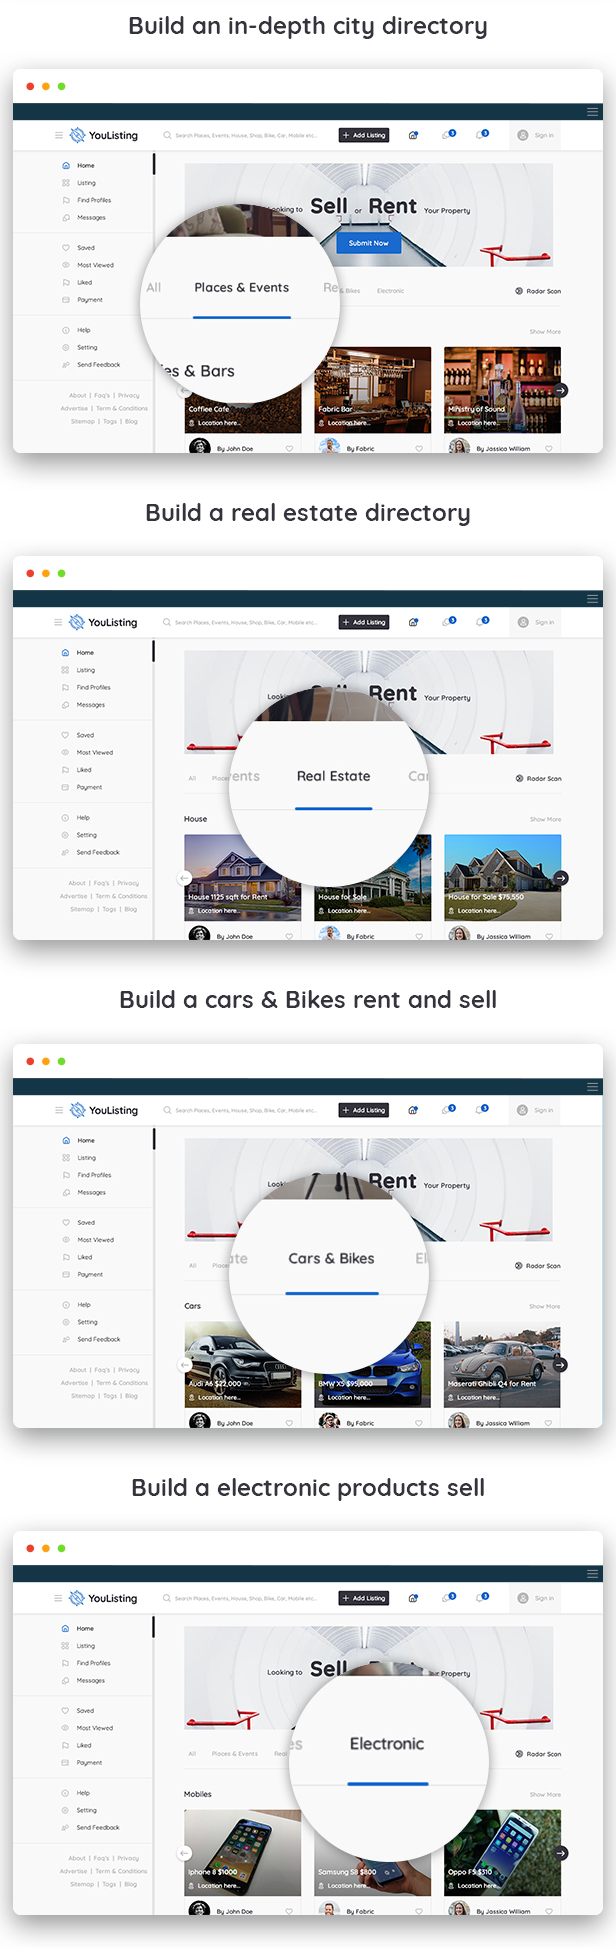 YouListing - Classified Listing and Directory Social Networking PSD Template - 2